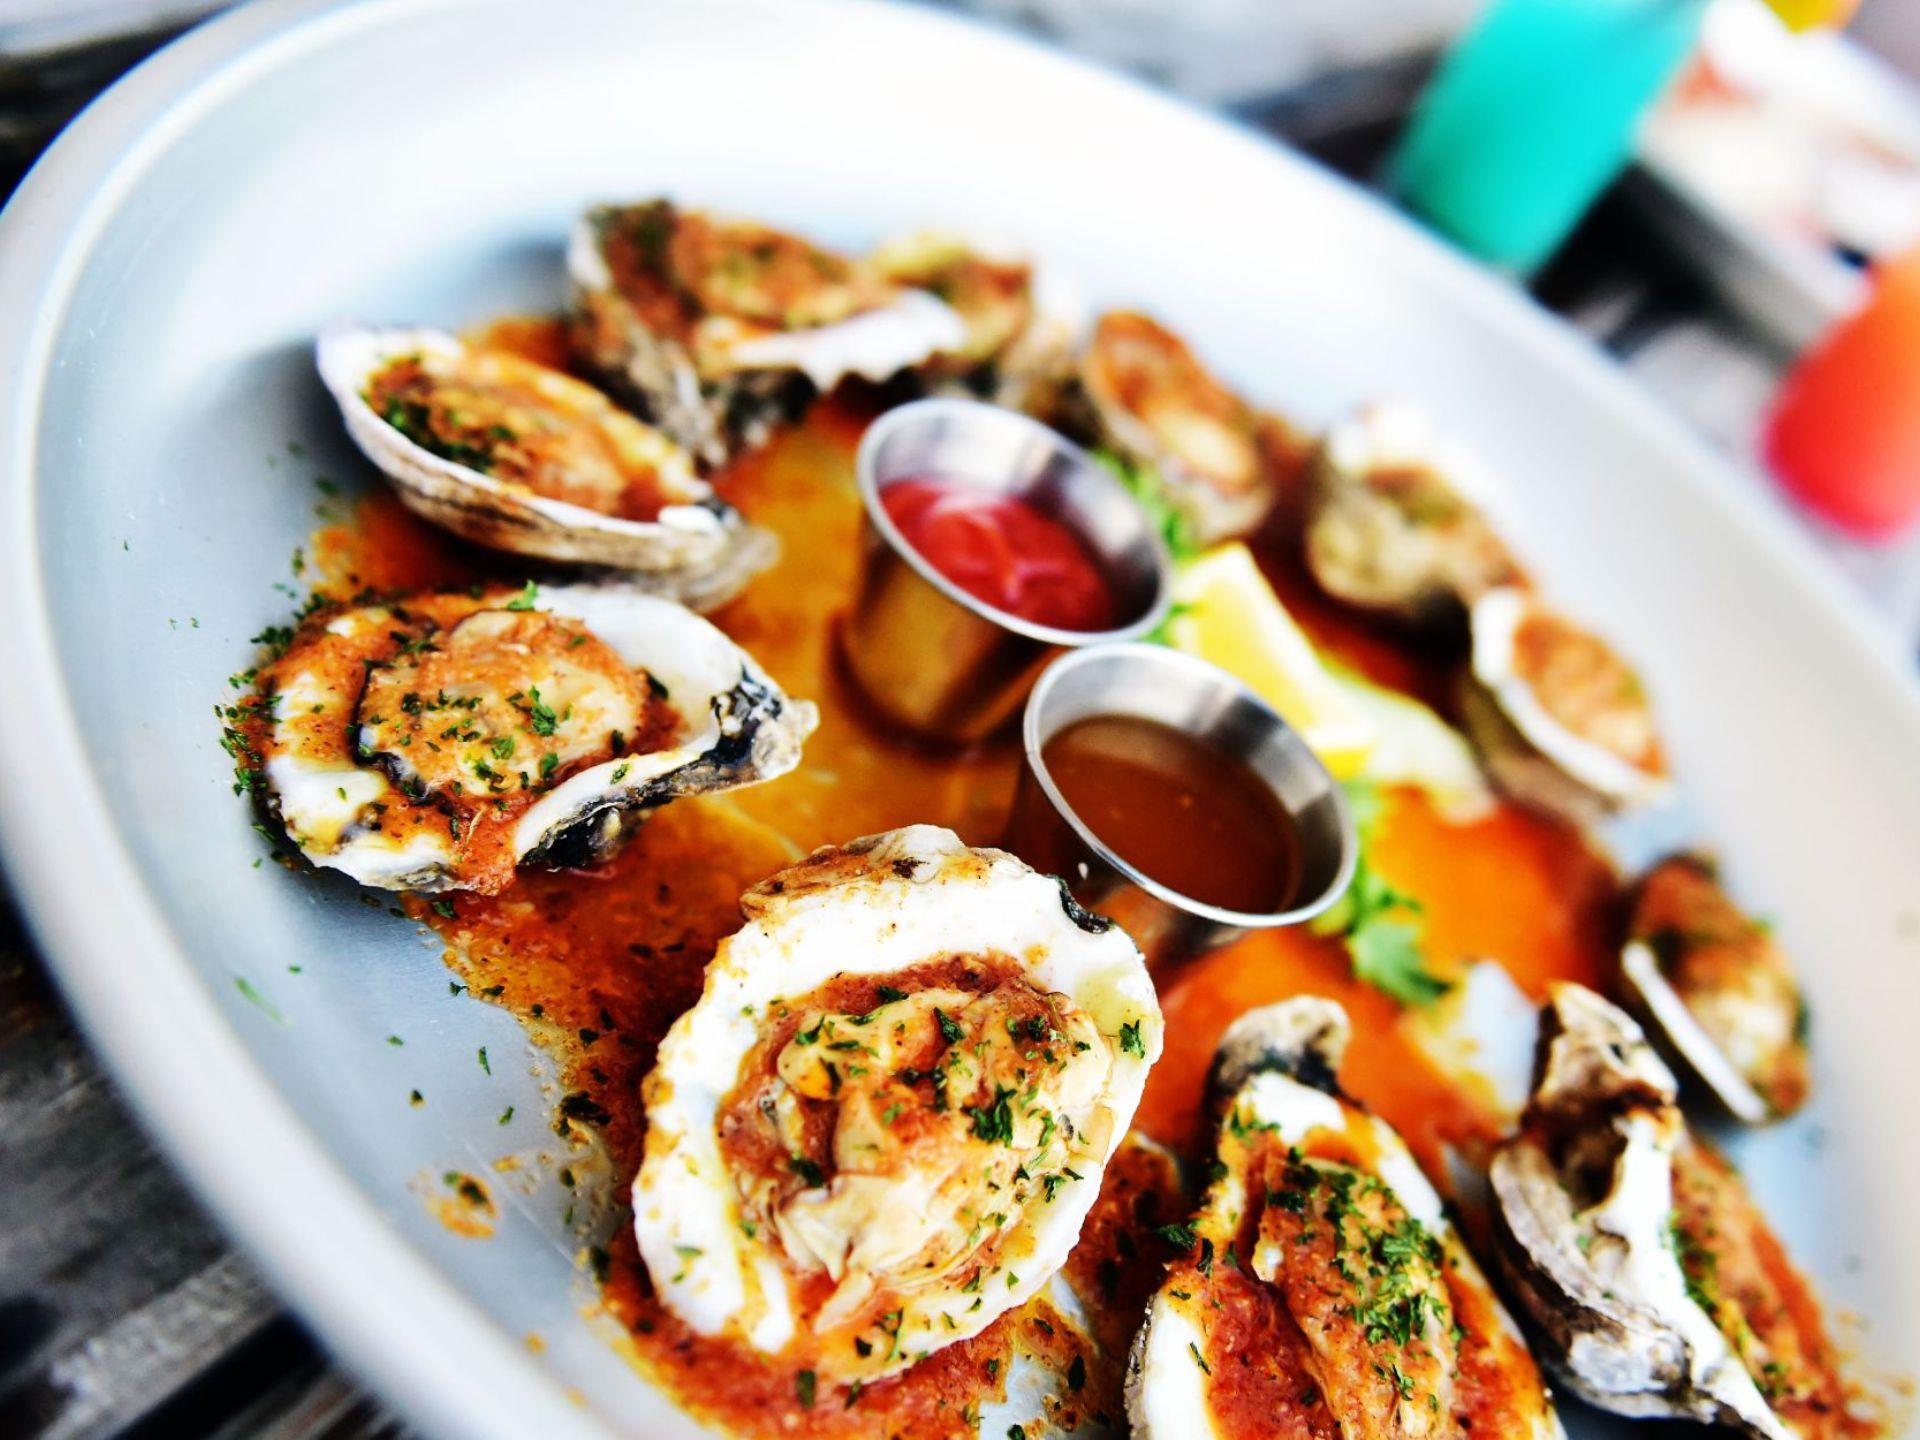 Baked oysters on the half shell on a plate with sauces in the center